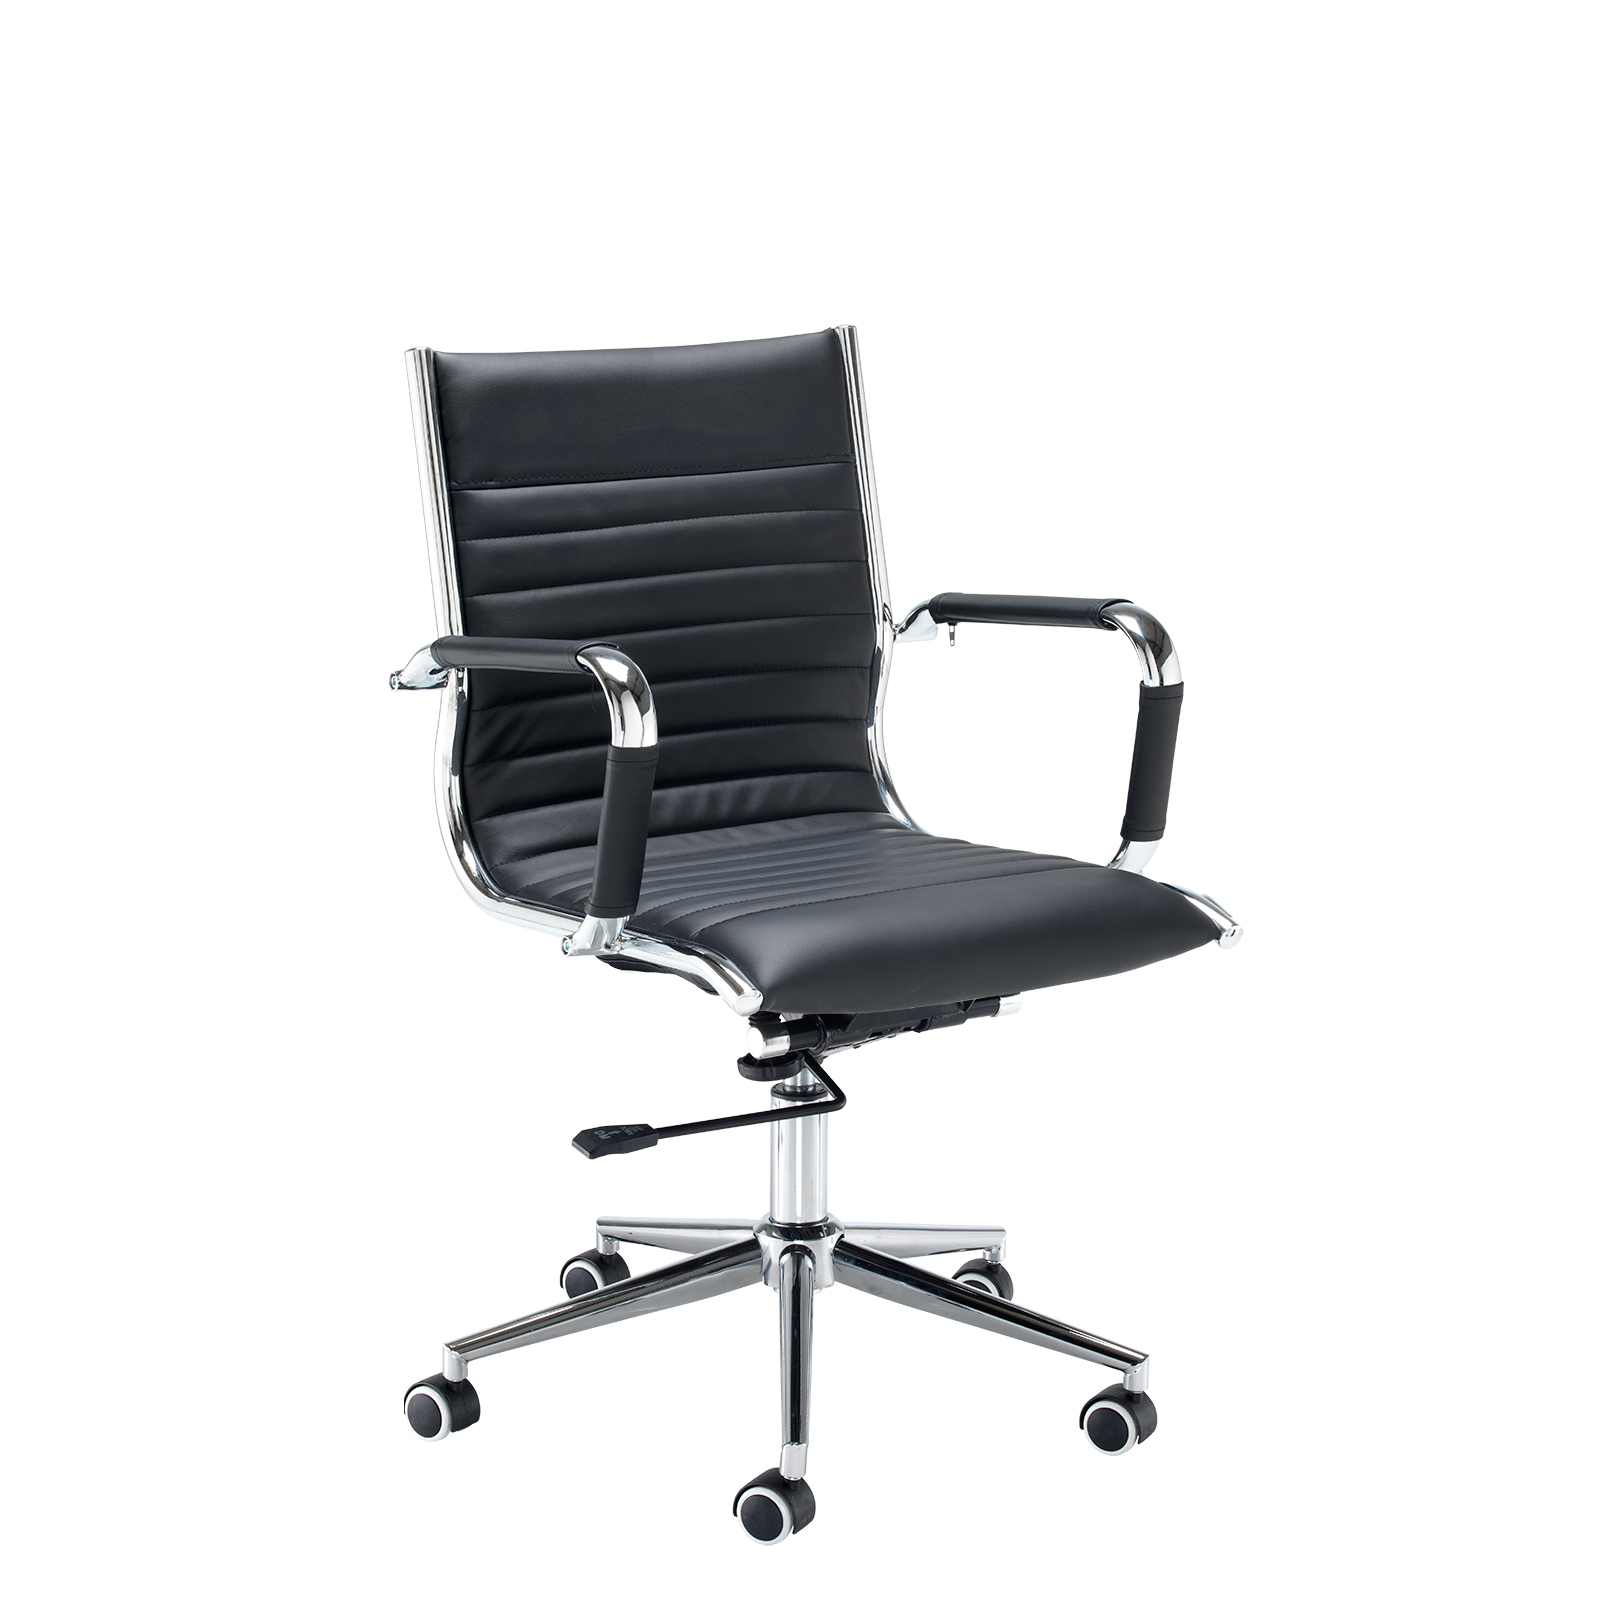 Executive Chairs Bari medium back executive chair